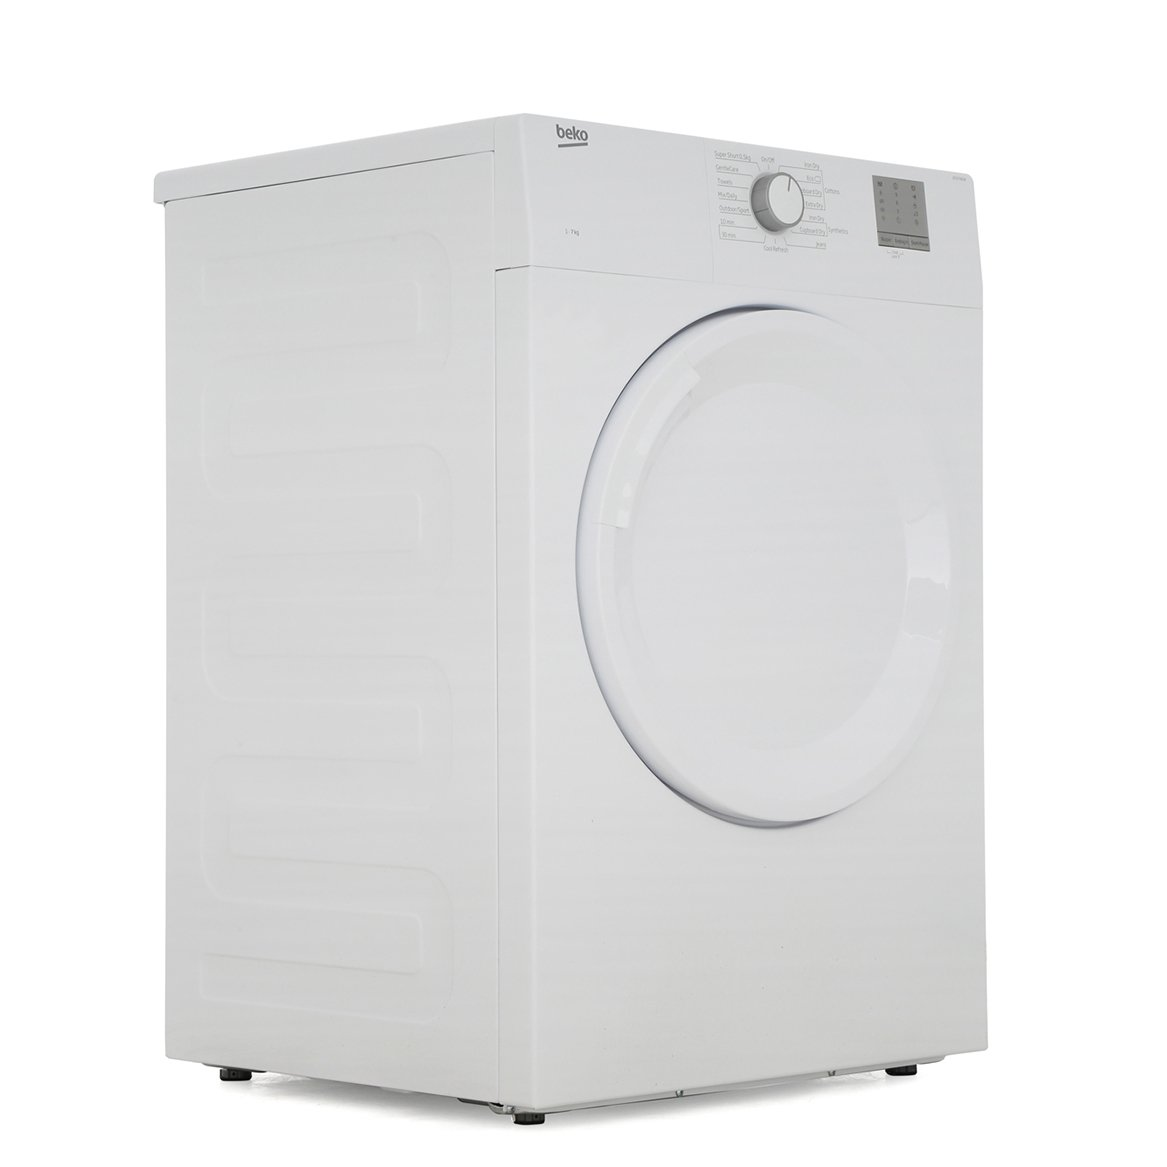 Beko DTGV7001W Vented Dryer